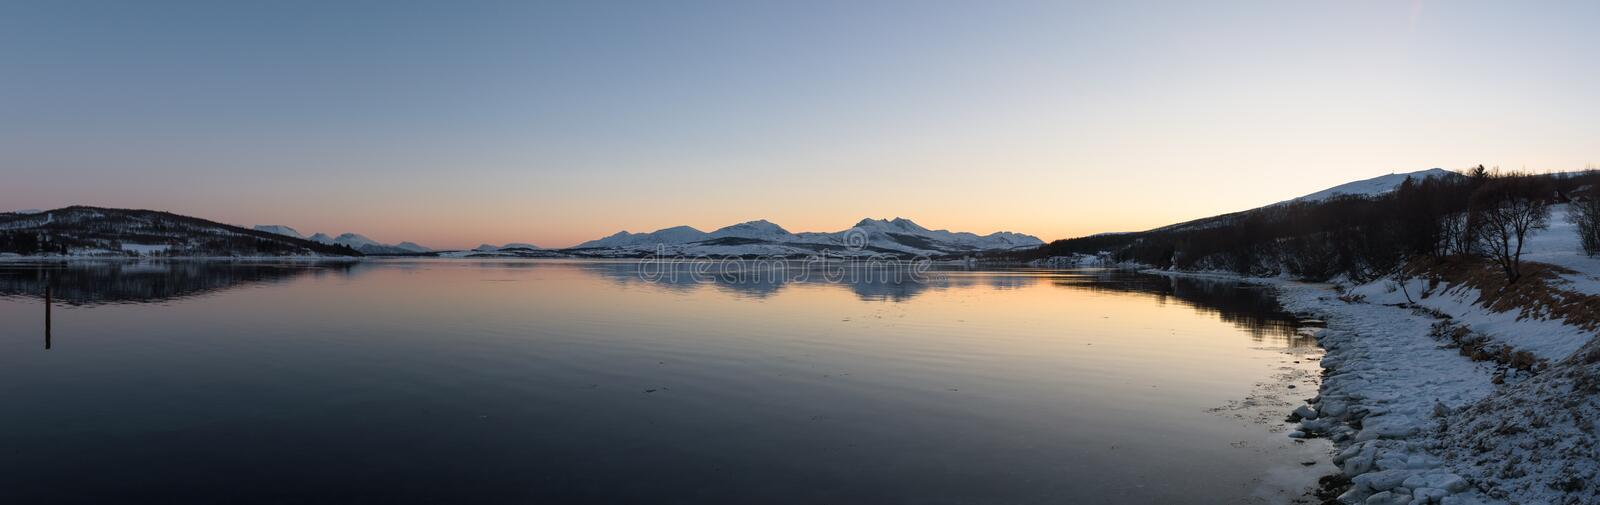 Mirror-like reflections in a Norwegian fjord near Tromsø. Norway just before sunset stock photo